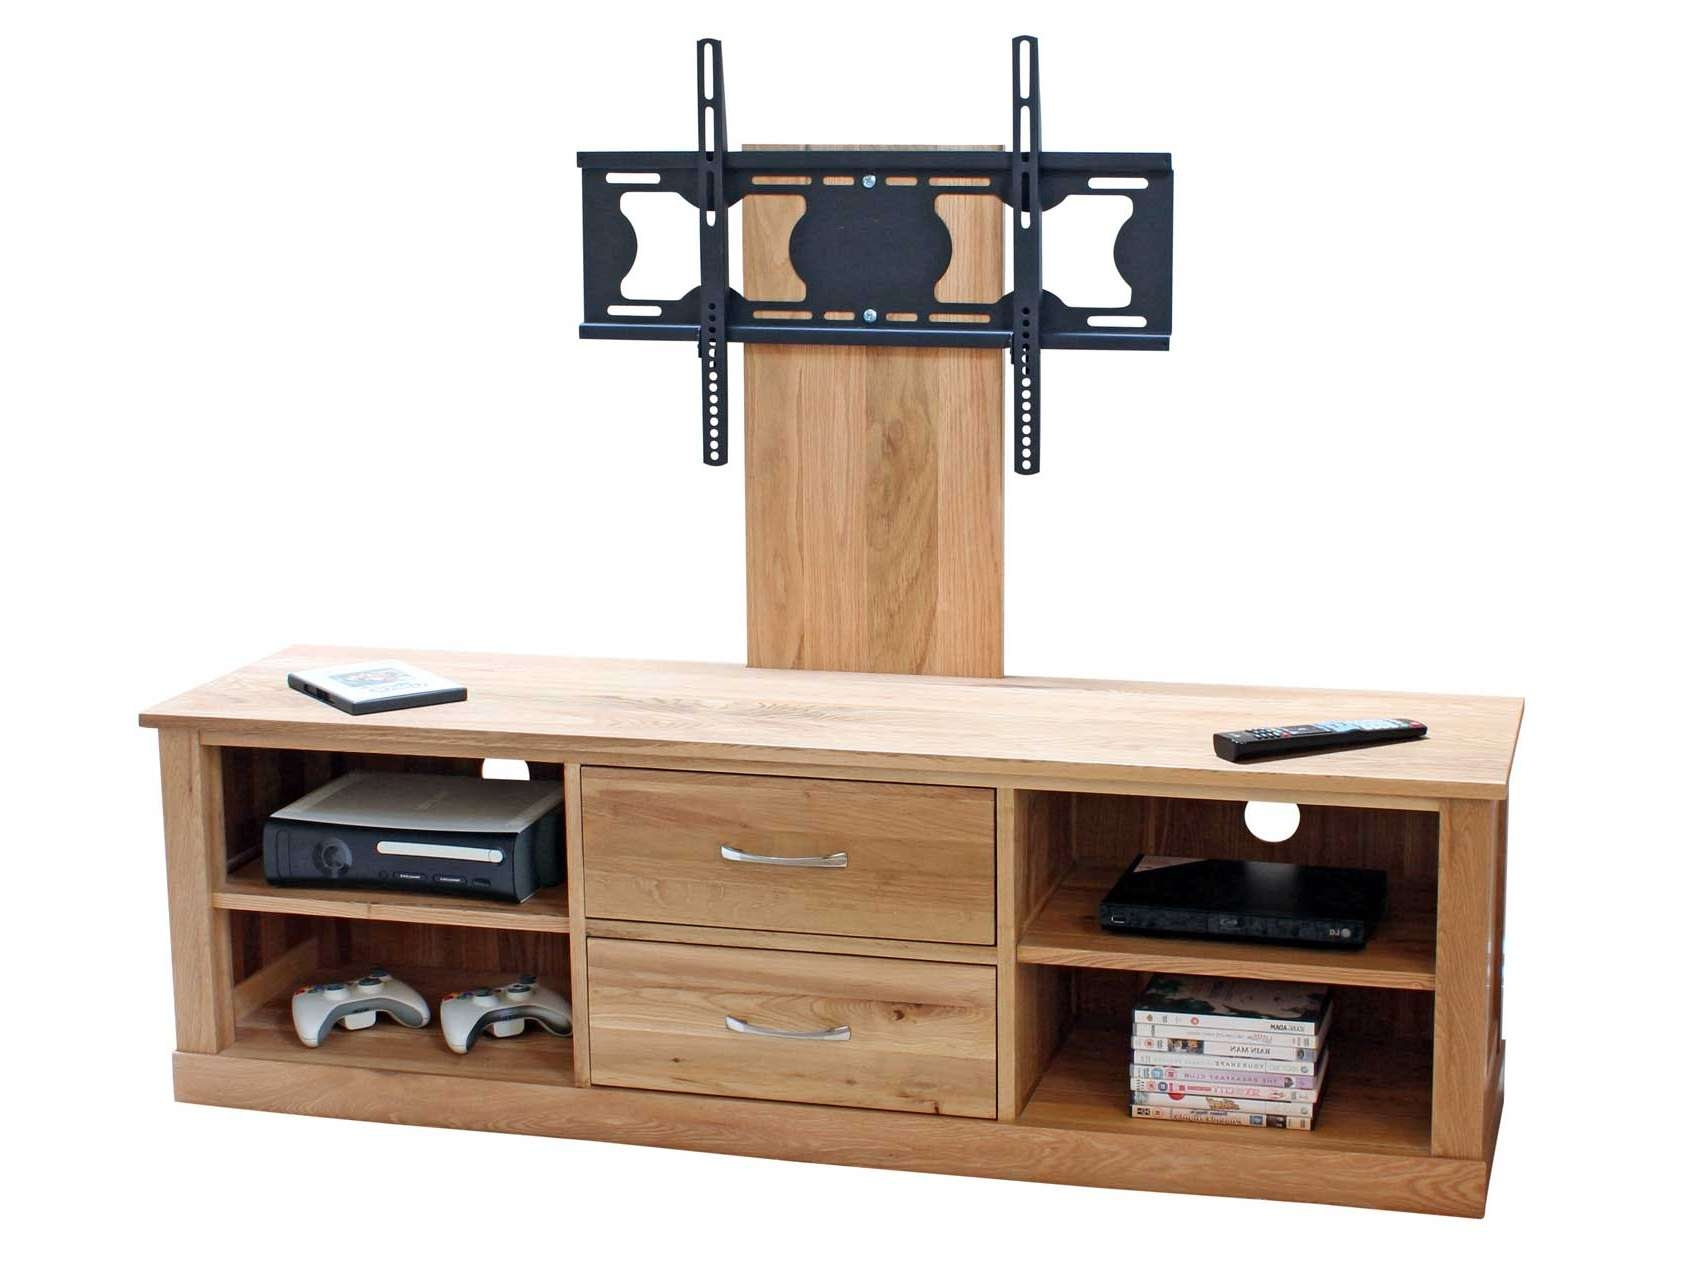 Classic Oak Television Unit With Mount Hampshire Furniture 3 Throughout Oak Tv Stands For Flat Screens (View 2 of 15)